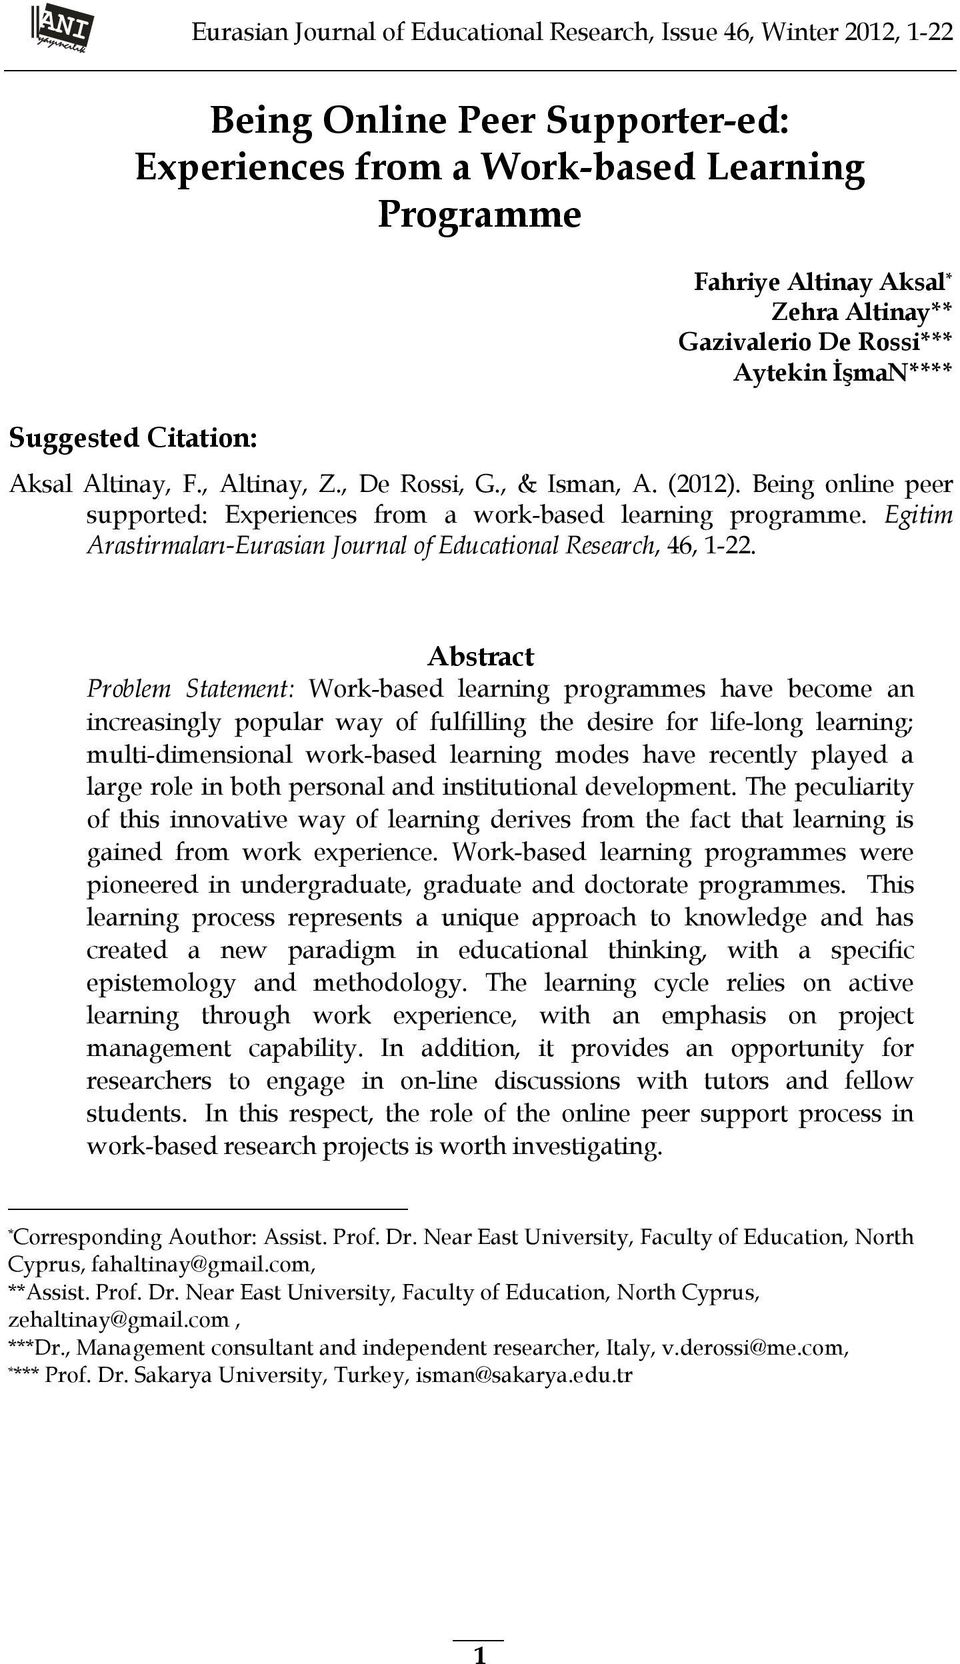 Being online peer supported: Experiences from a work-based learning programme. Egitim Arastirmaları-Eurasian Journal of Educational Research, 46, 1-22.